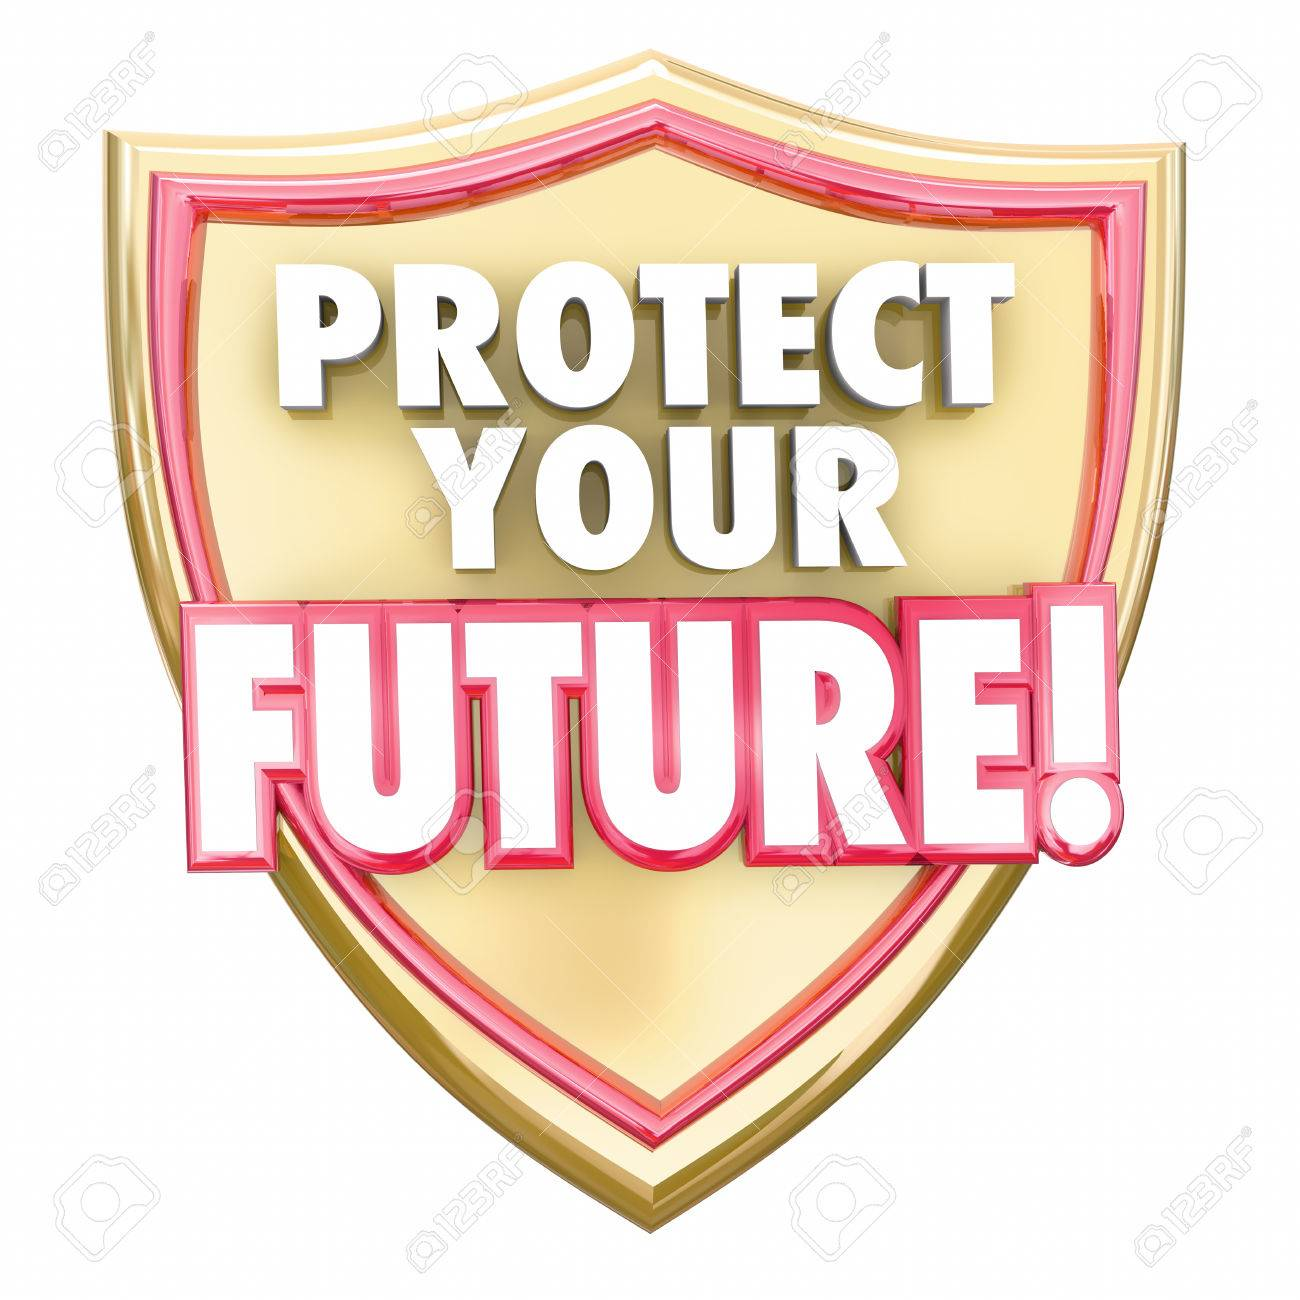 b648e163b59d Protect Your Future words in red 3d letters on a gold shield to illustrate  saving money